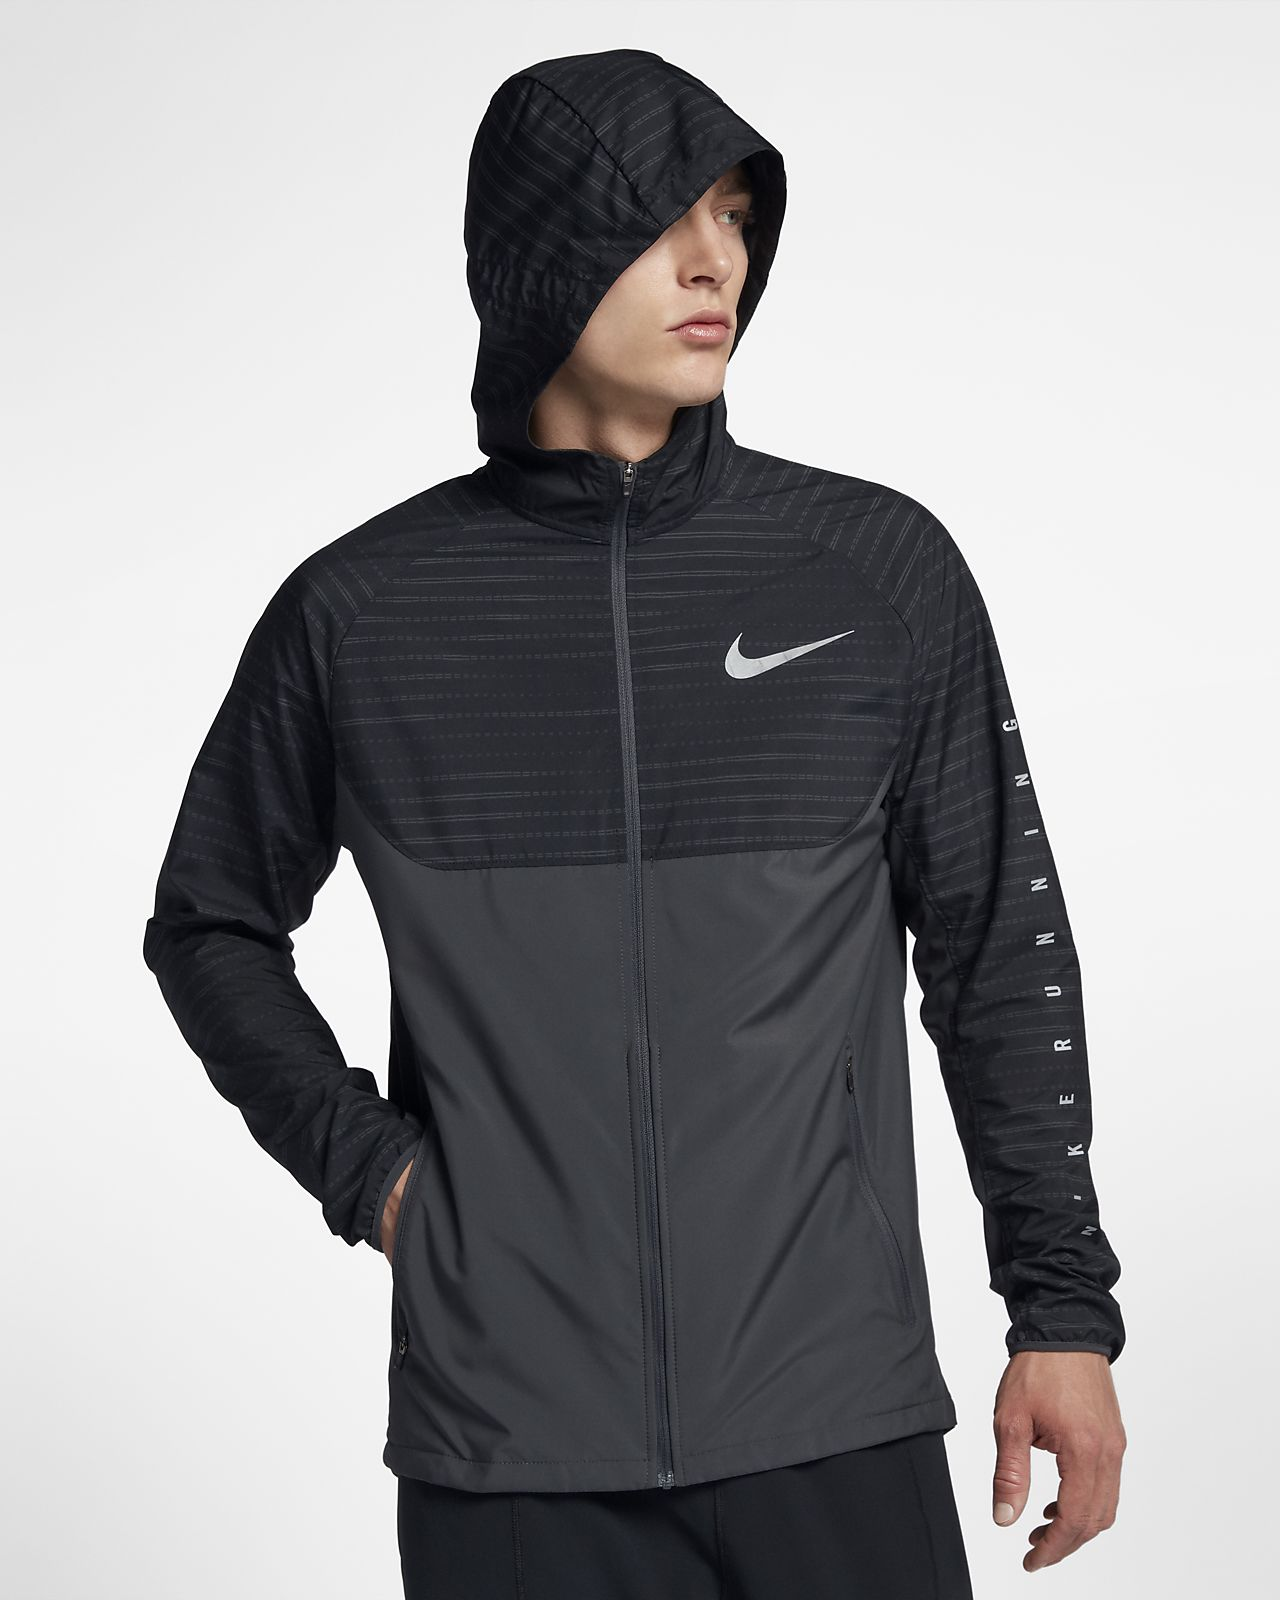 reputable site c295b 46585 ... Nike Essential Men s Hooded Running Jacket